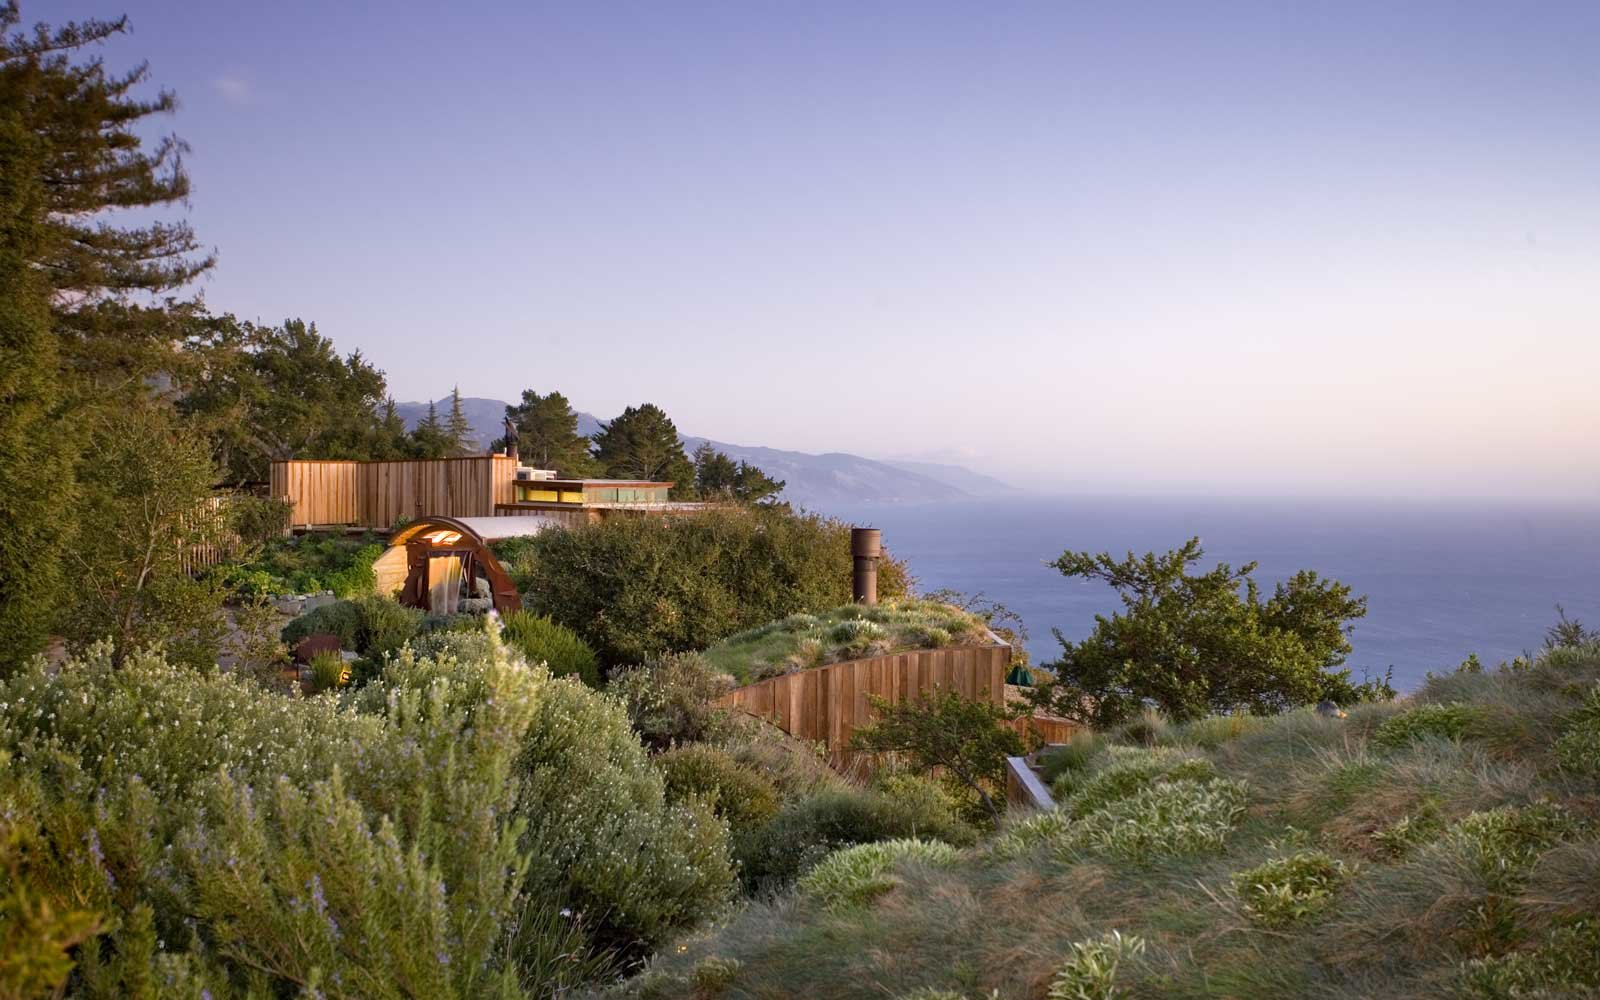 Post Ranch Inn — Big Sur, California